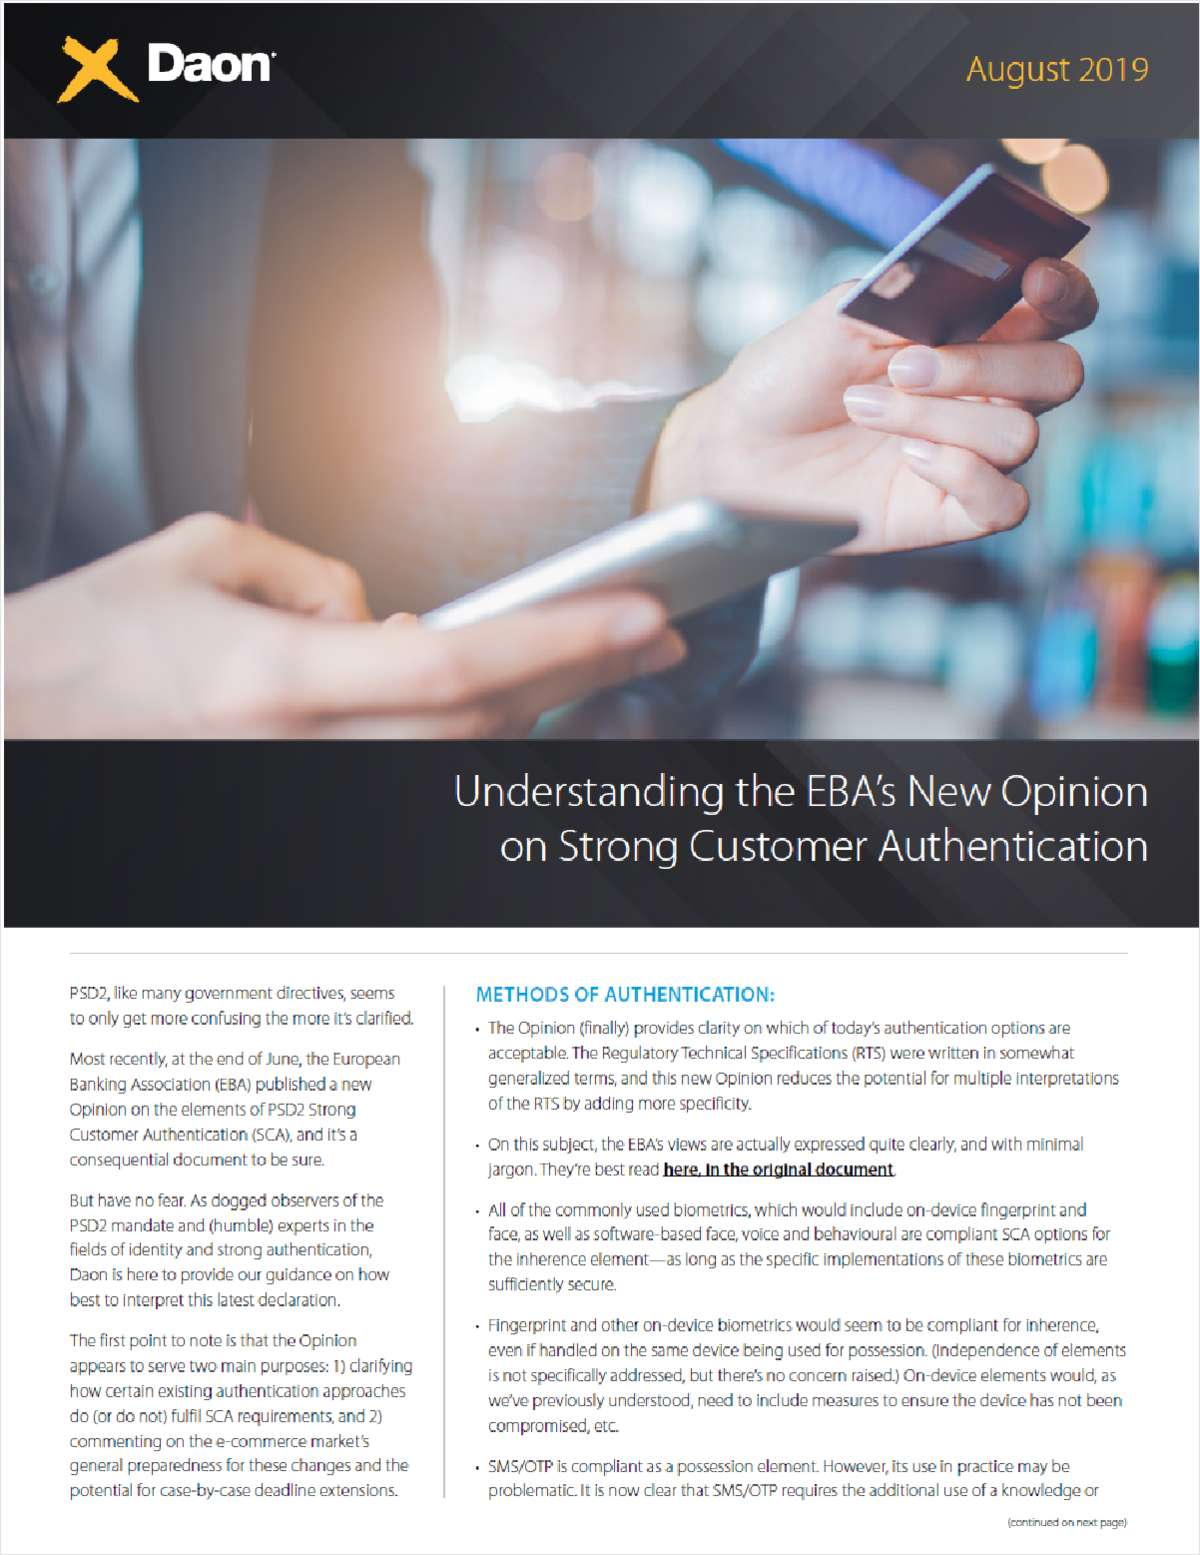 Understanding the European Banking Authority's New Opinion on PSD2 Strong Customer Authentication